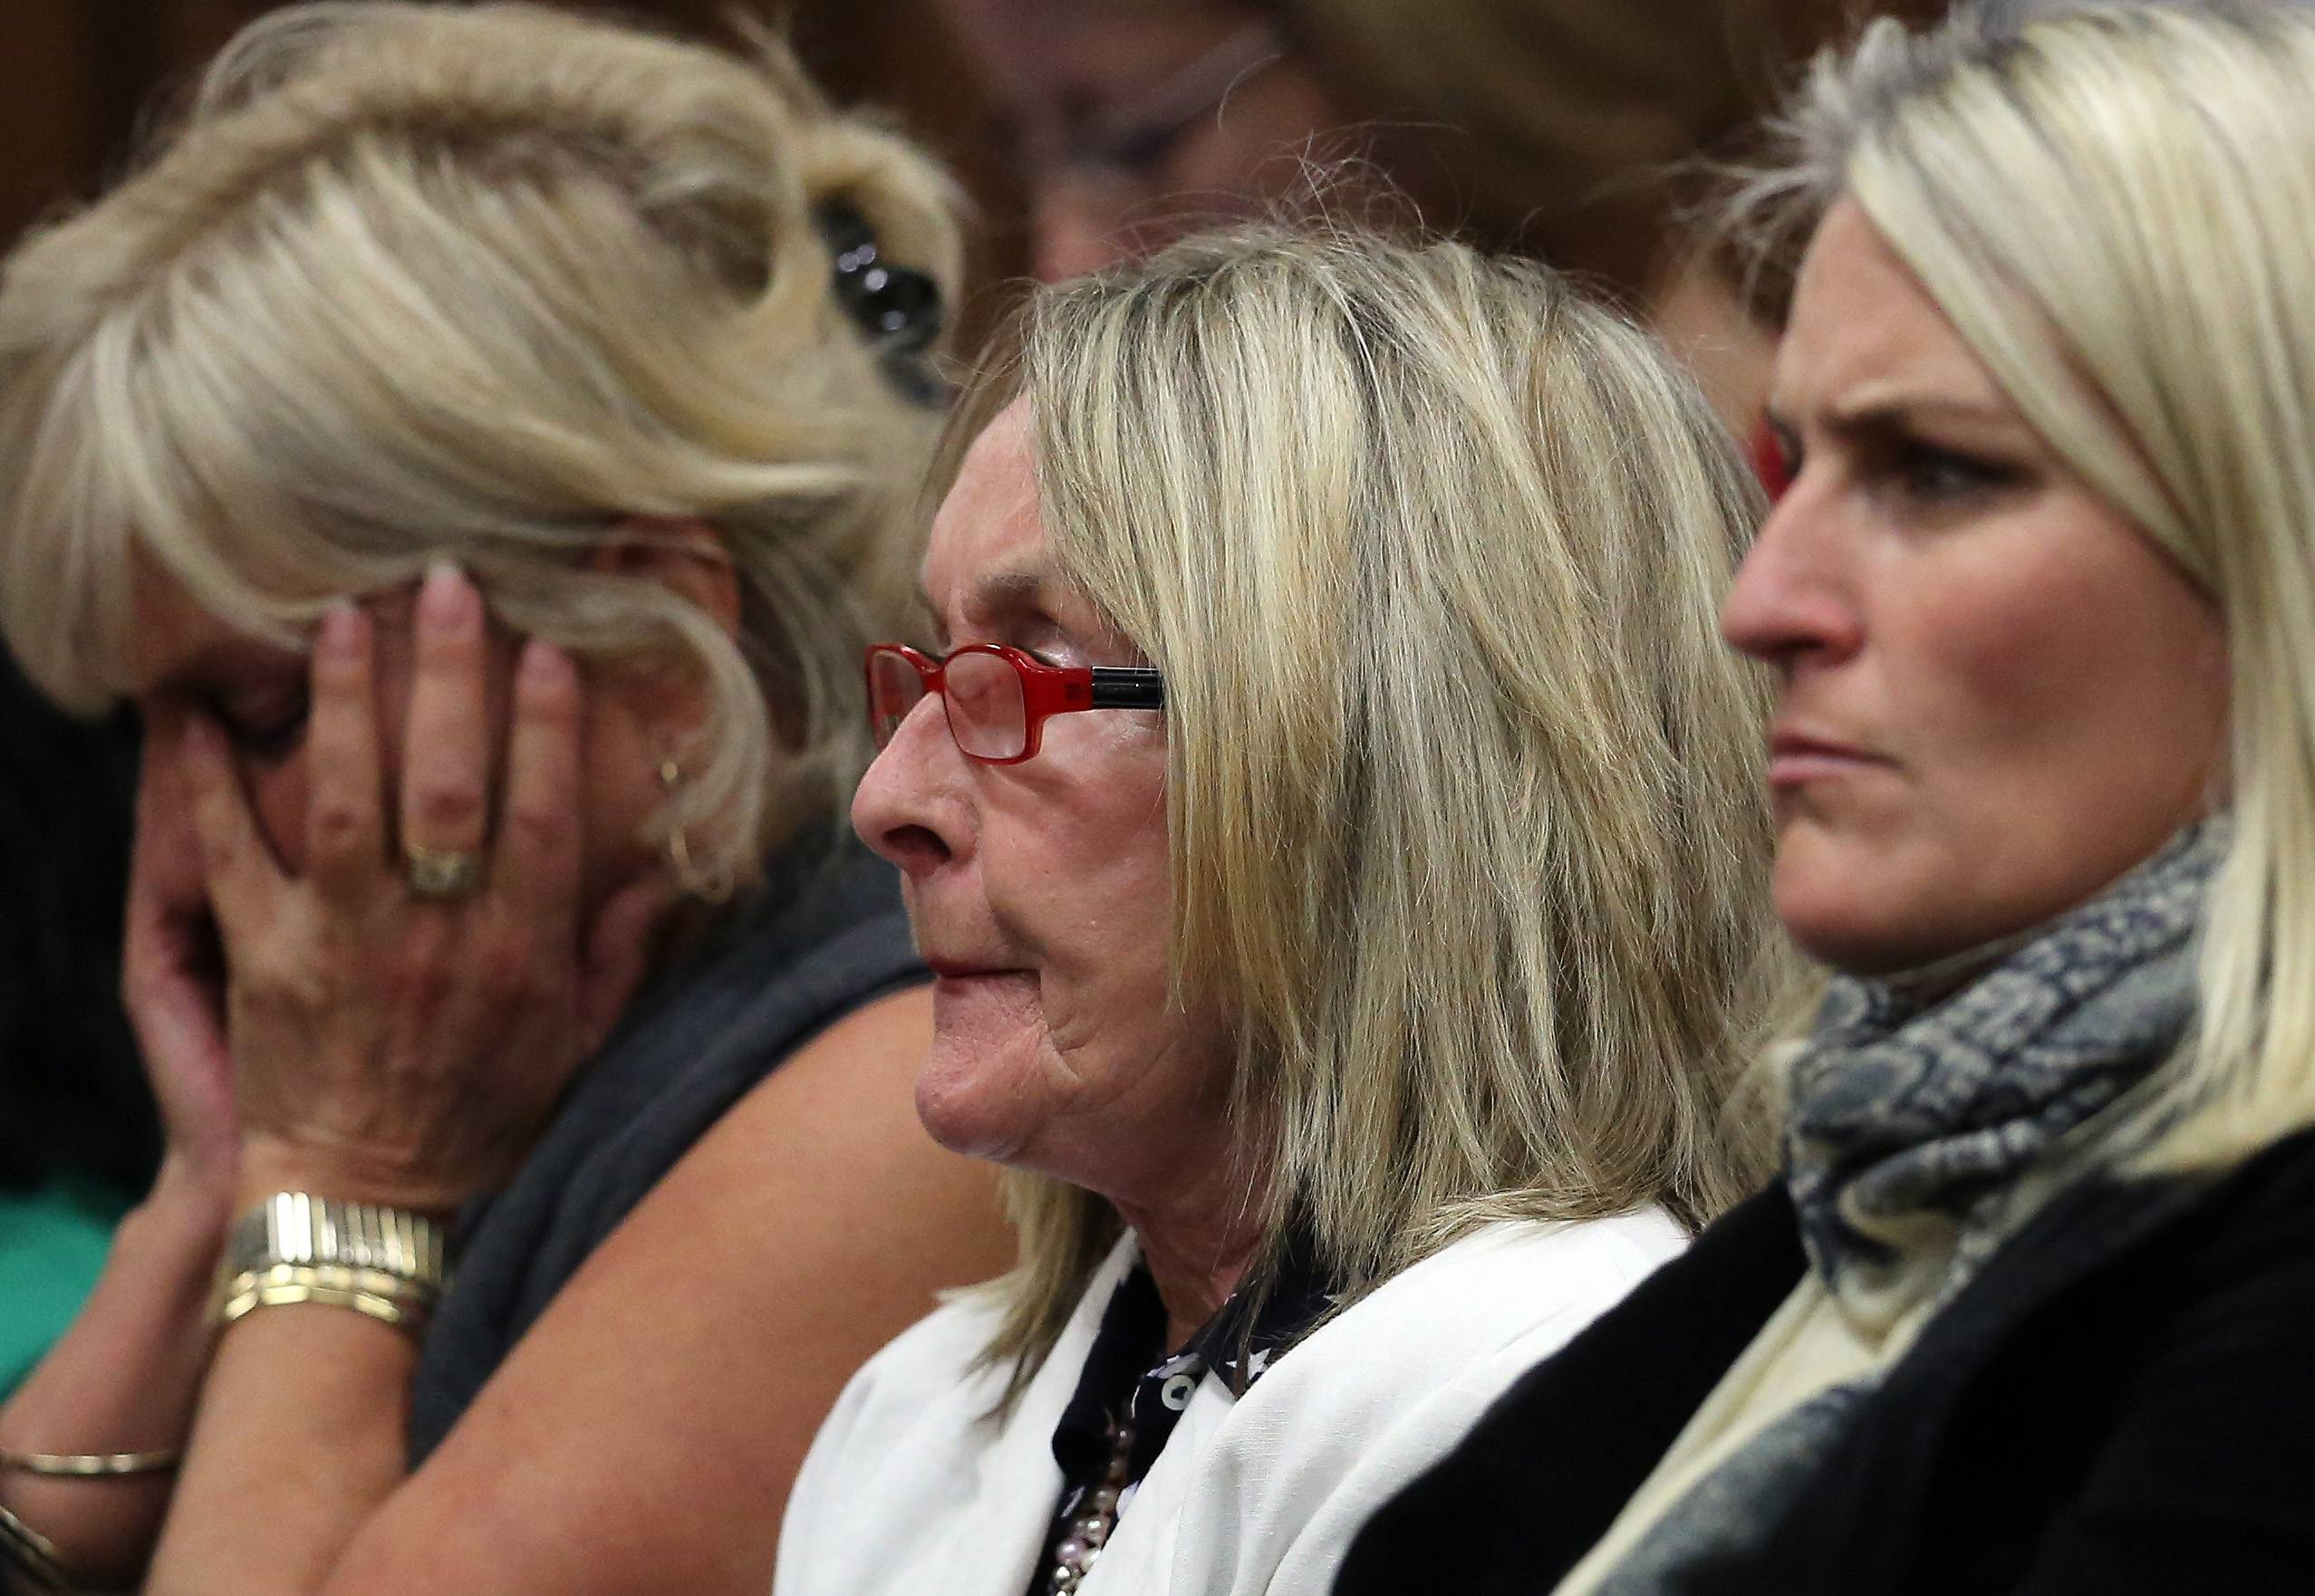 June Steenkamp, center, mother of the late Reeva Steenkamp, listens in the public gallery, as state prosecutor Gerrie Nel questions Oscar Pistorius, in court in Pretoria, South Africa, Friday, April 11, 2014. Pistorius is charged with the murder of his girlfriend Steenkamp, on Valentine's Day in 2013.